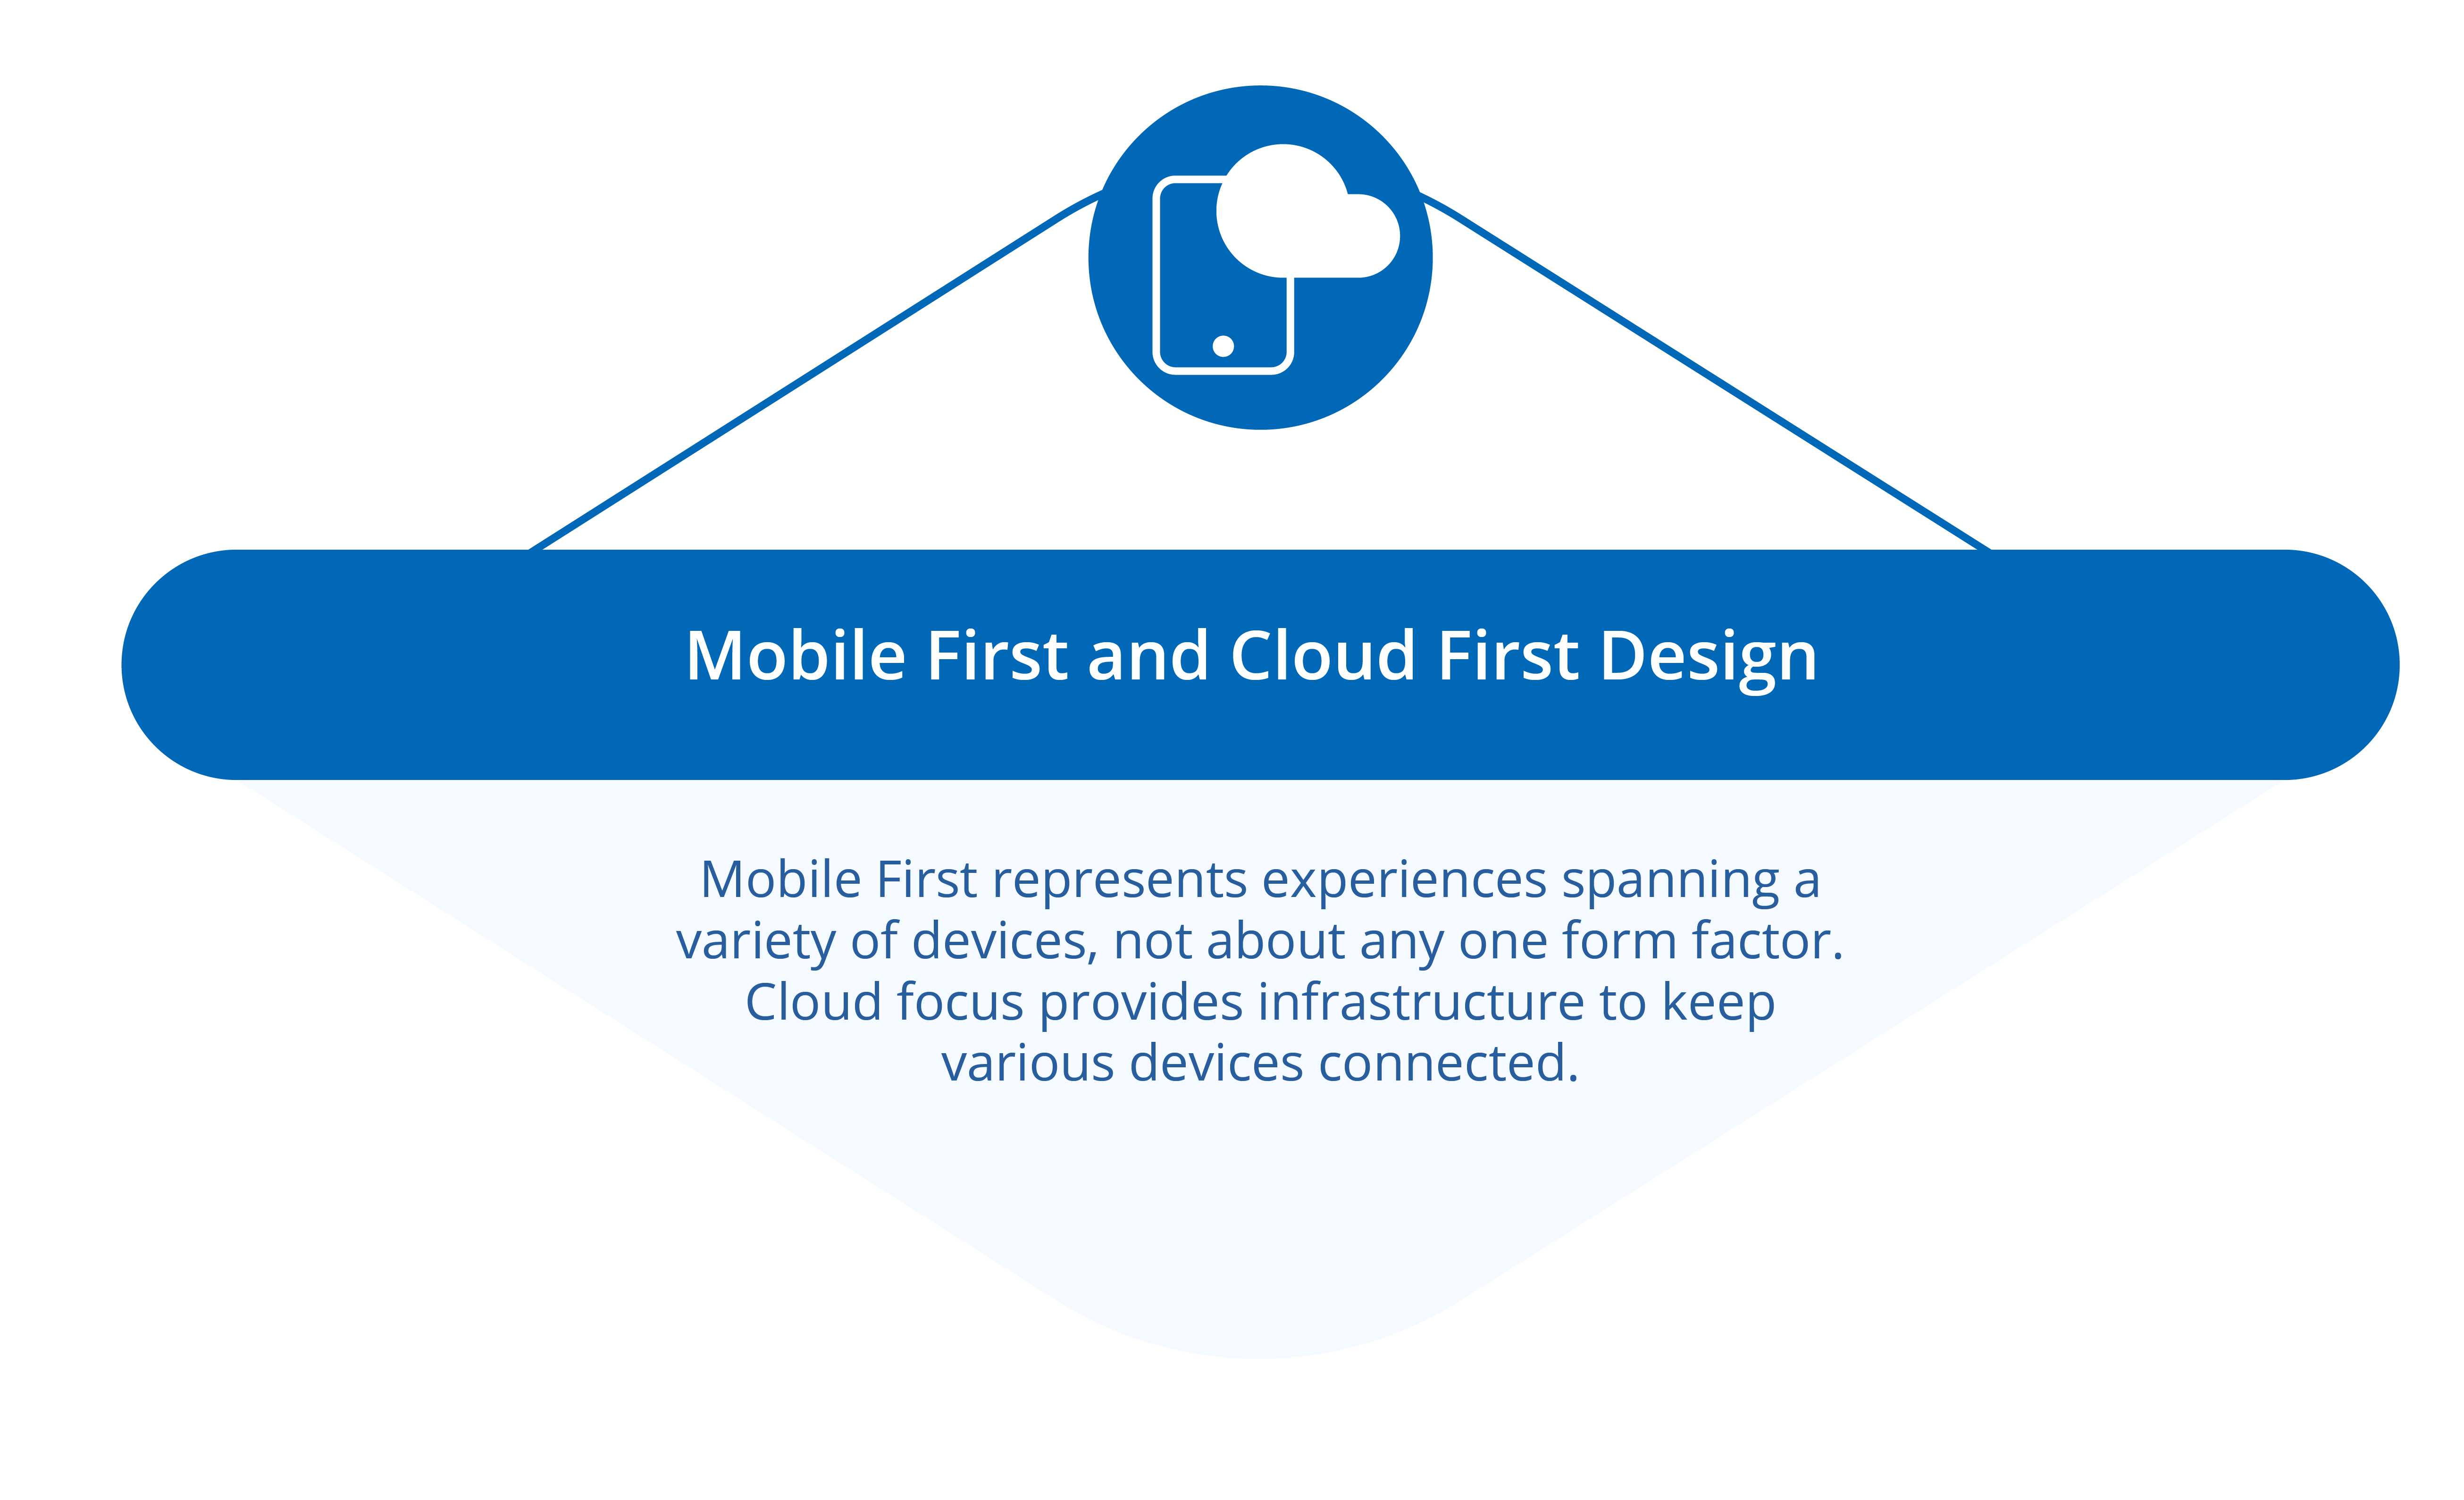 Mobile First and Cloud First Design